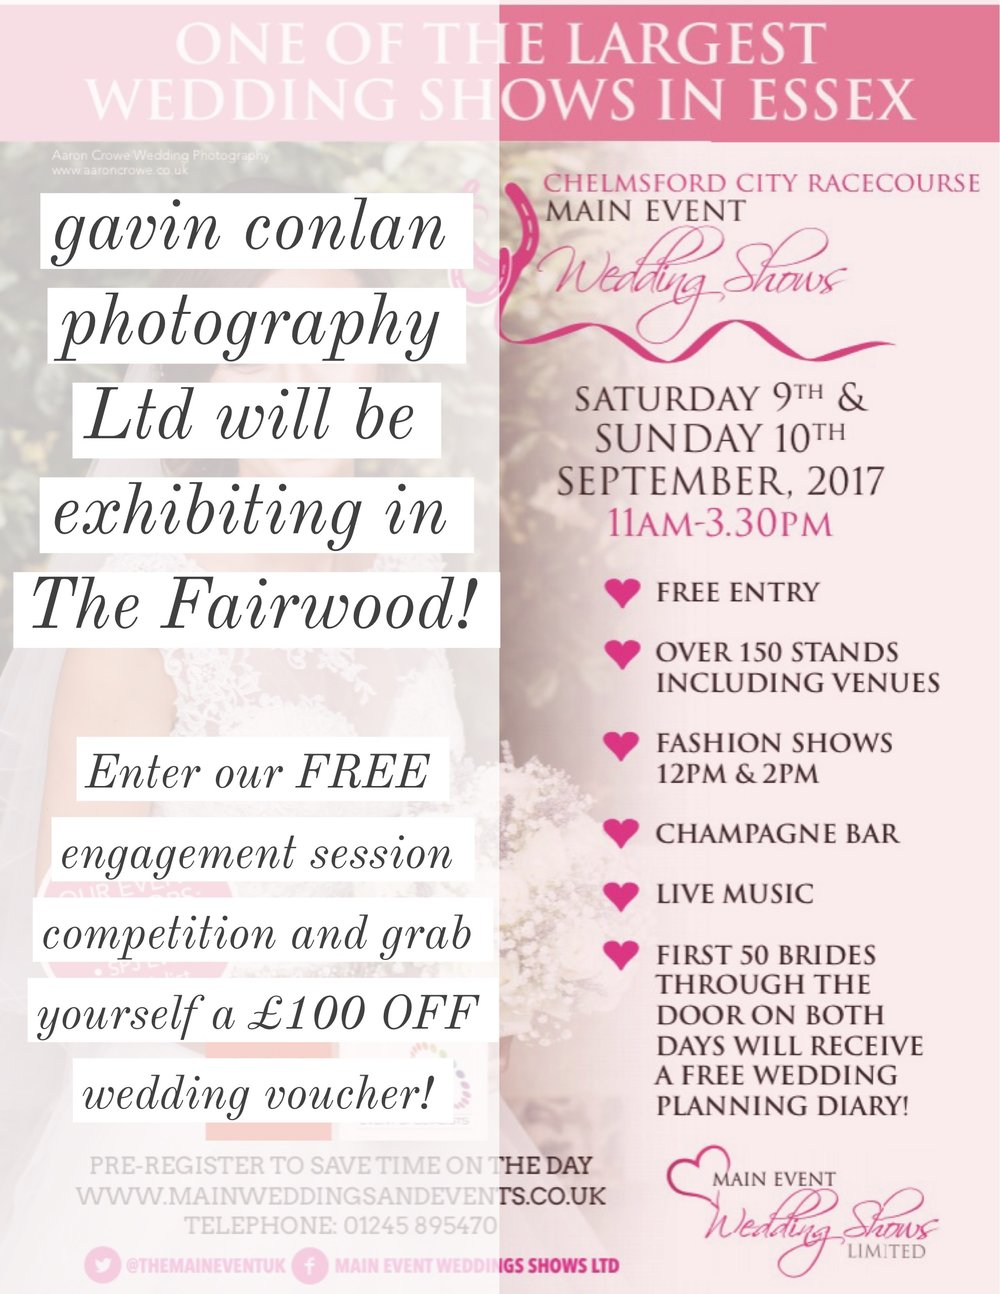 gavin conlan photography Ltd is exhibiting in The Fairwood during the Chelmsford City Racecourse wedding show hosted by Main Event Weddings.  Wedding show is the 9th and 10th September 2017 in Essex.